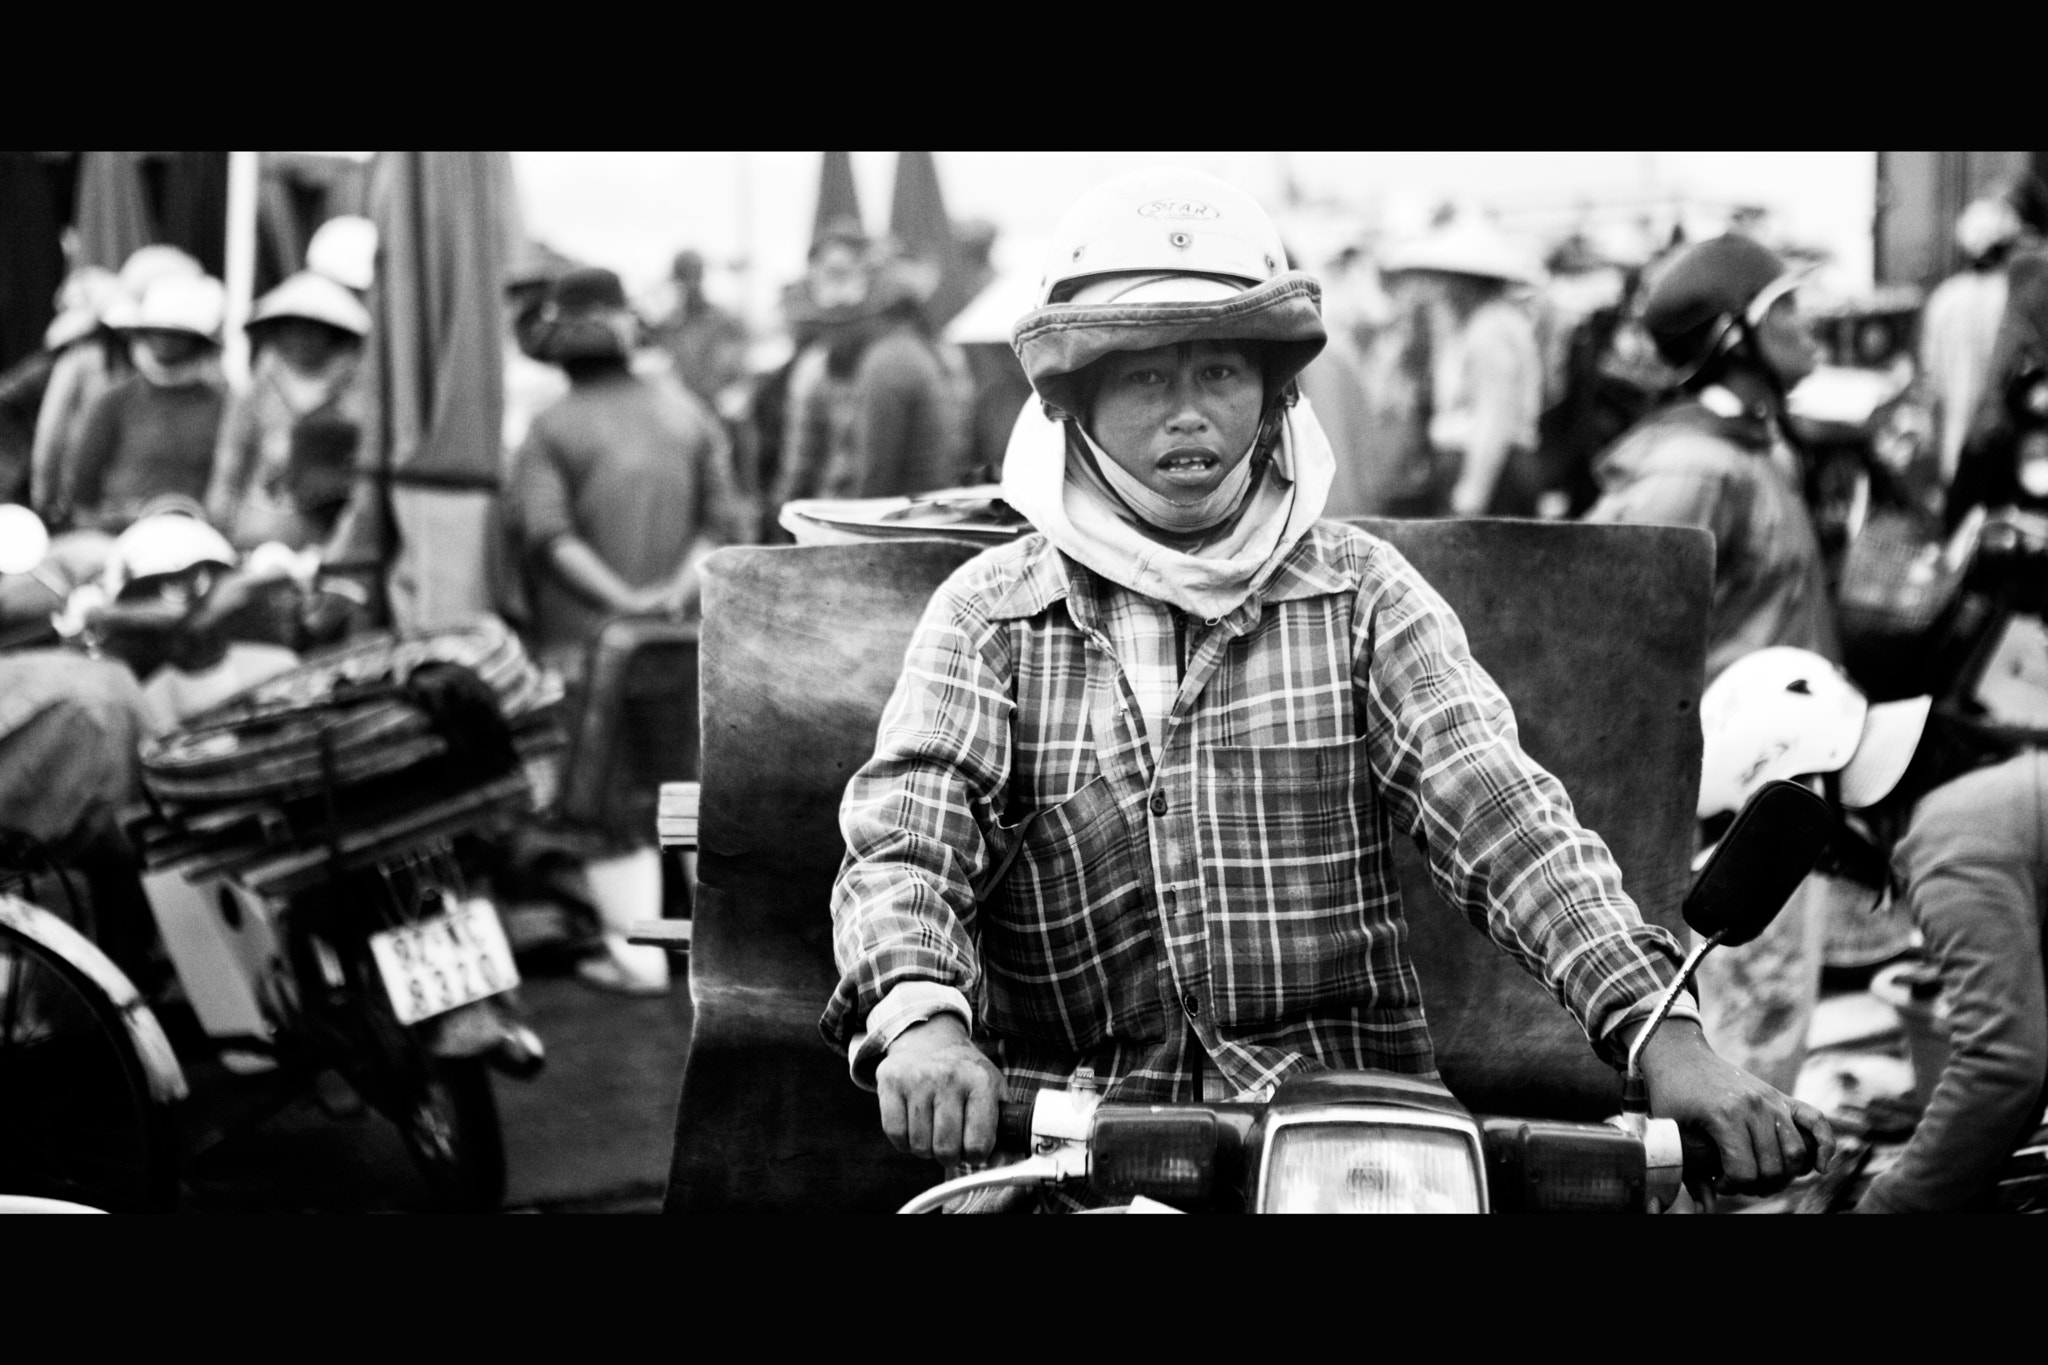 Photograph Scooters in Vietnam by Victor Borst on 500px